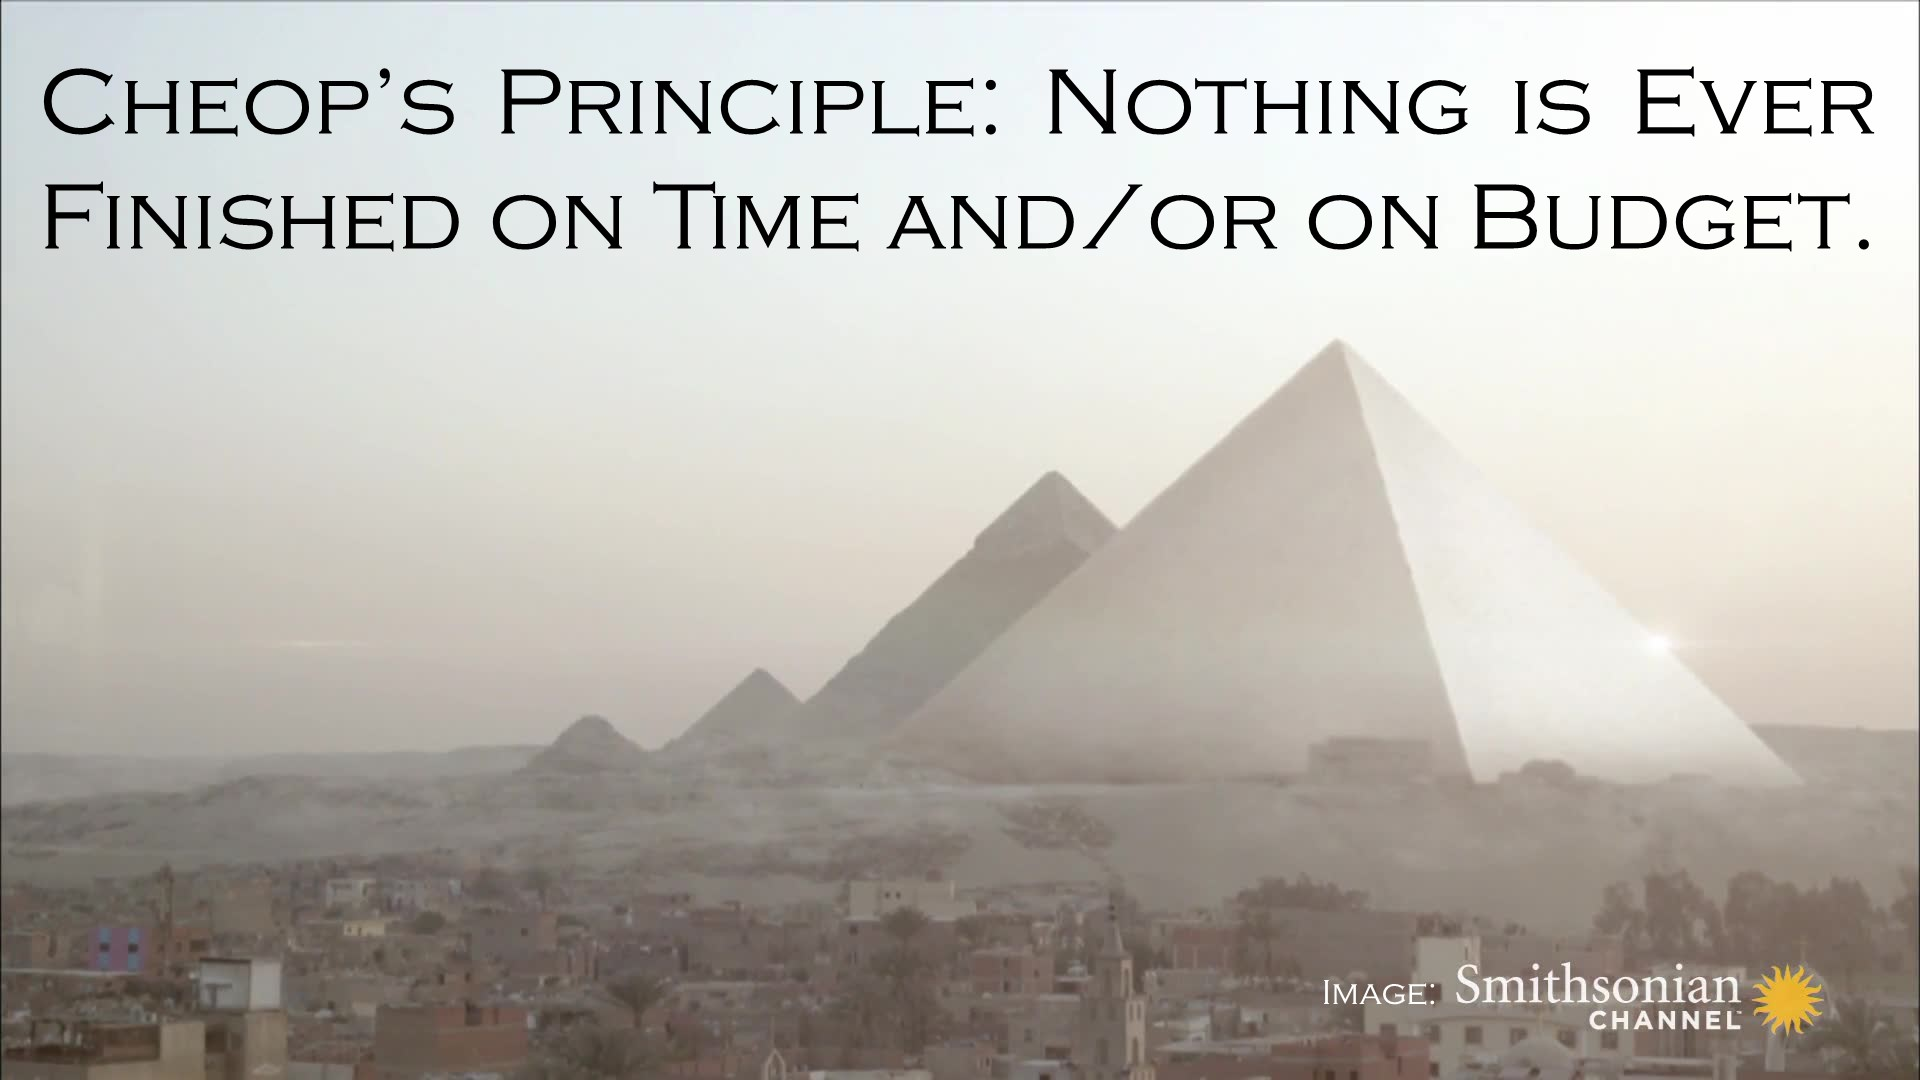 Cheop's Principle: Nothing is ever finished on time and/or on budget